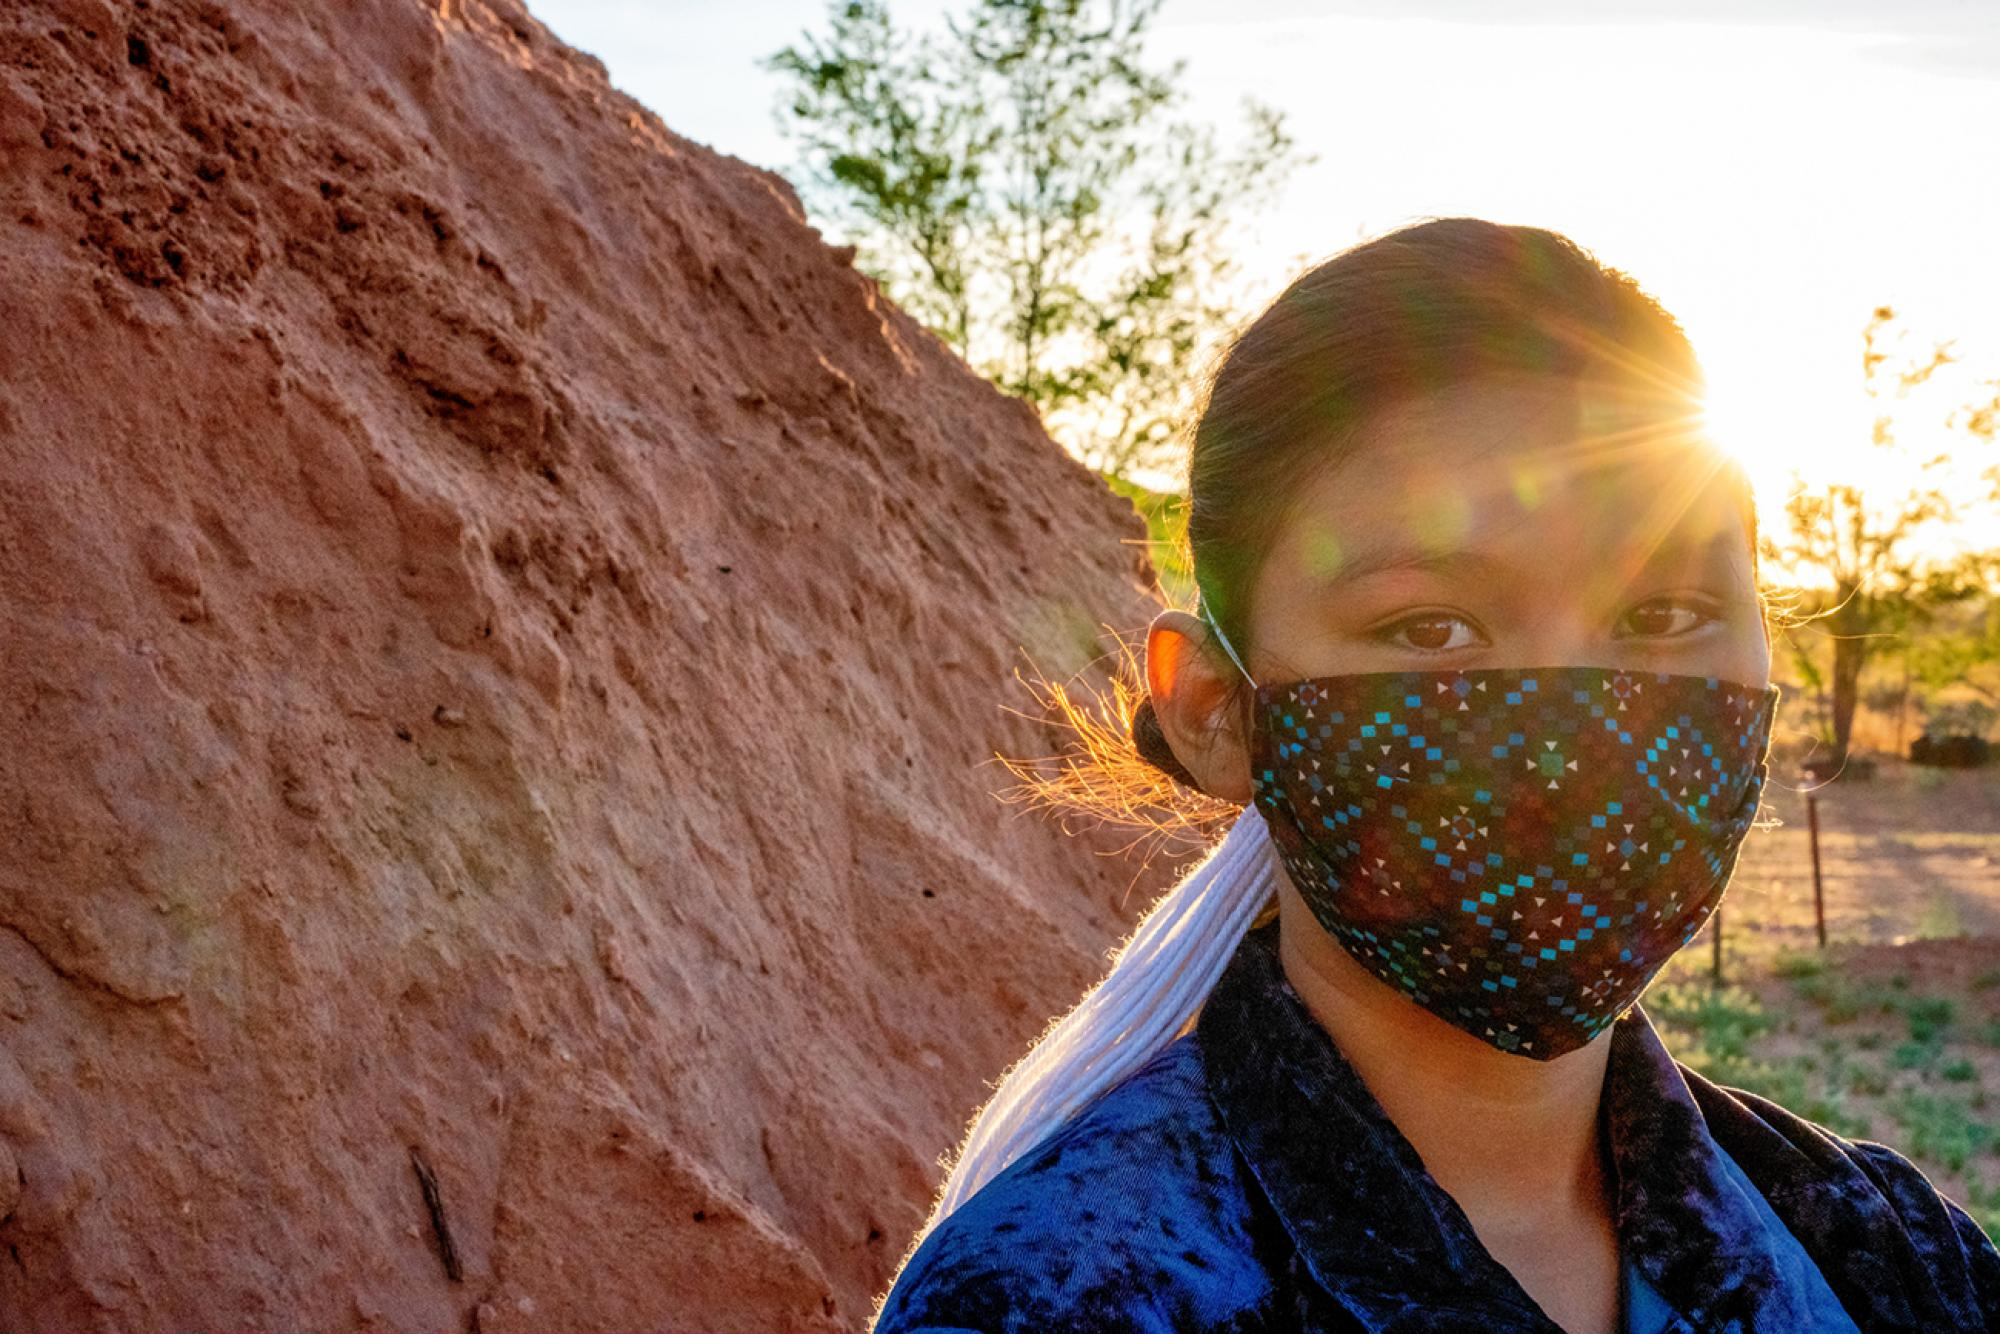 Residents of the Navajo Nation were subject to strict stay-at-home orders that included daily and weekend-long curfews, as well as mask requirements in public.